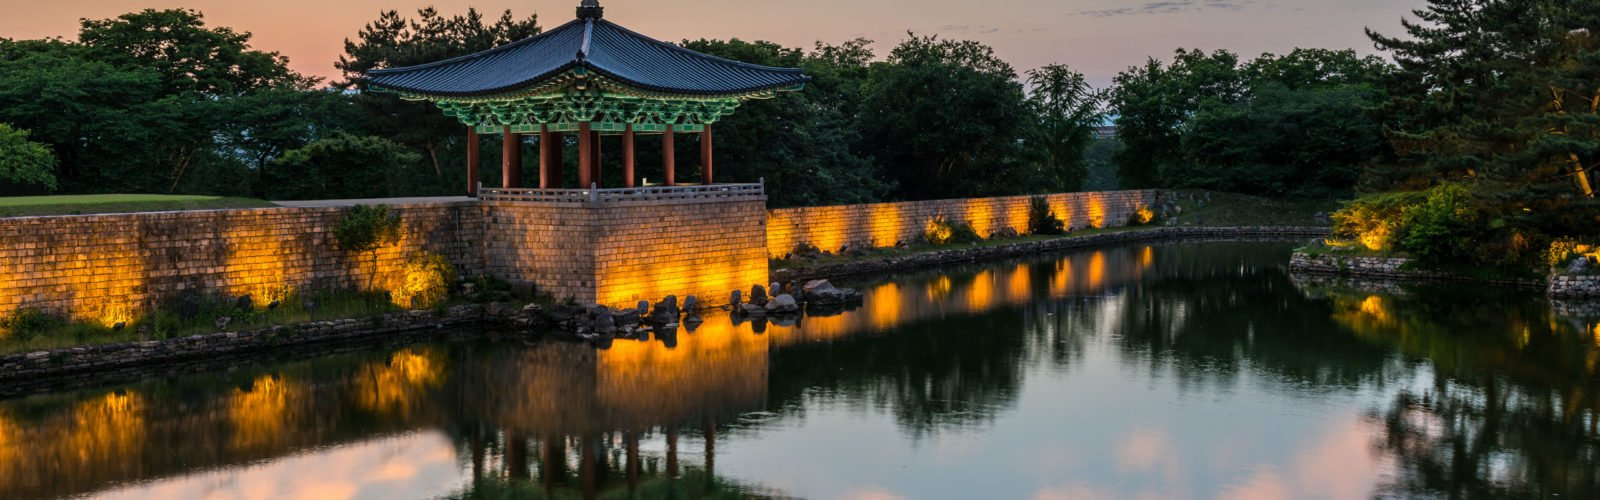 anapji-pond-gyeongju-south-korea